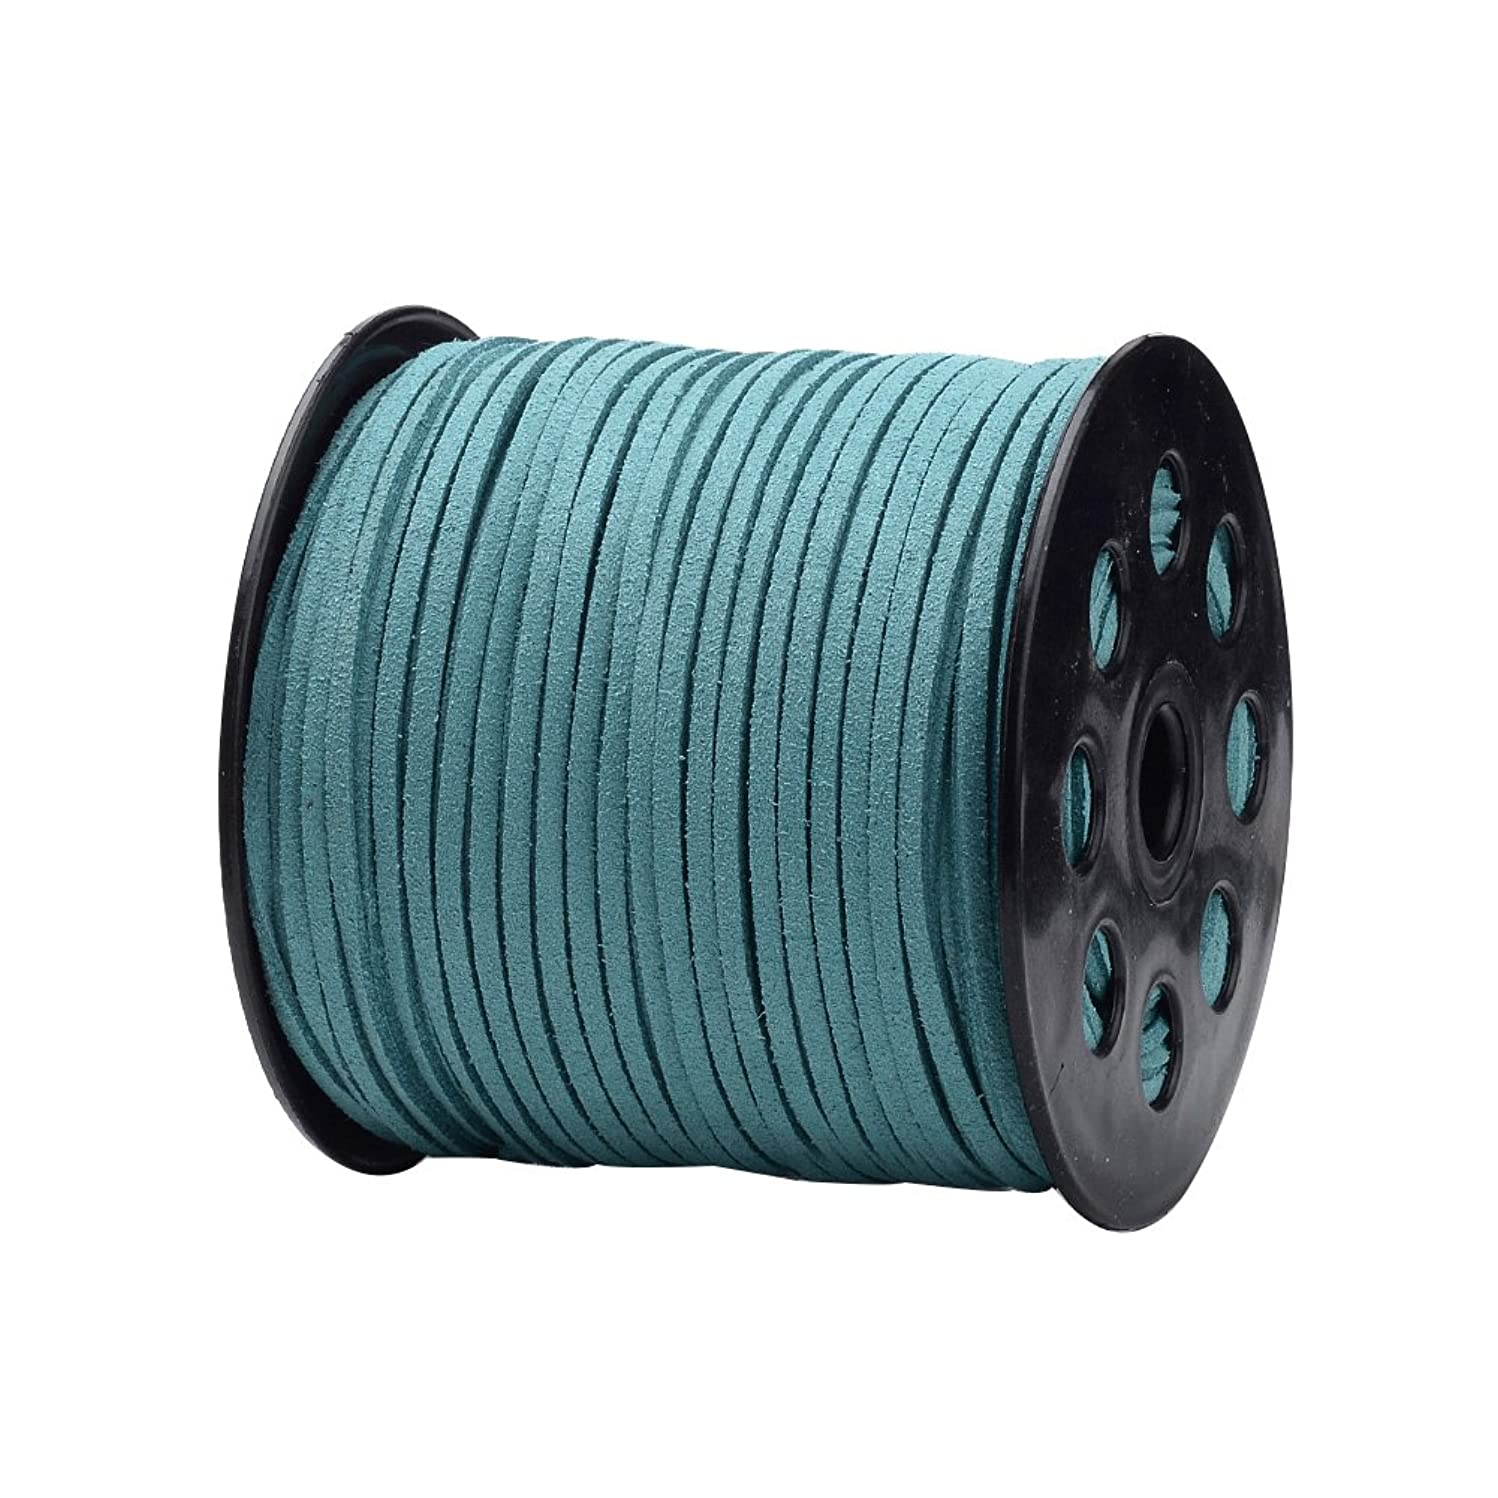 NBEADS 2.7mm 98 Yards/Roll Cadet Blue Color of Micro Fiber Lace Flat Faux Suede Leather Cord Beading Thread Cords Braiding String for Jewelry Making